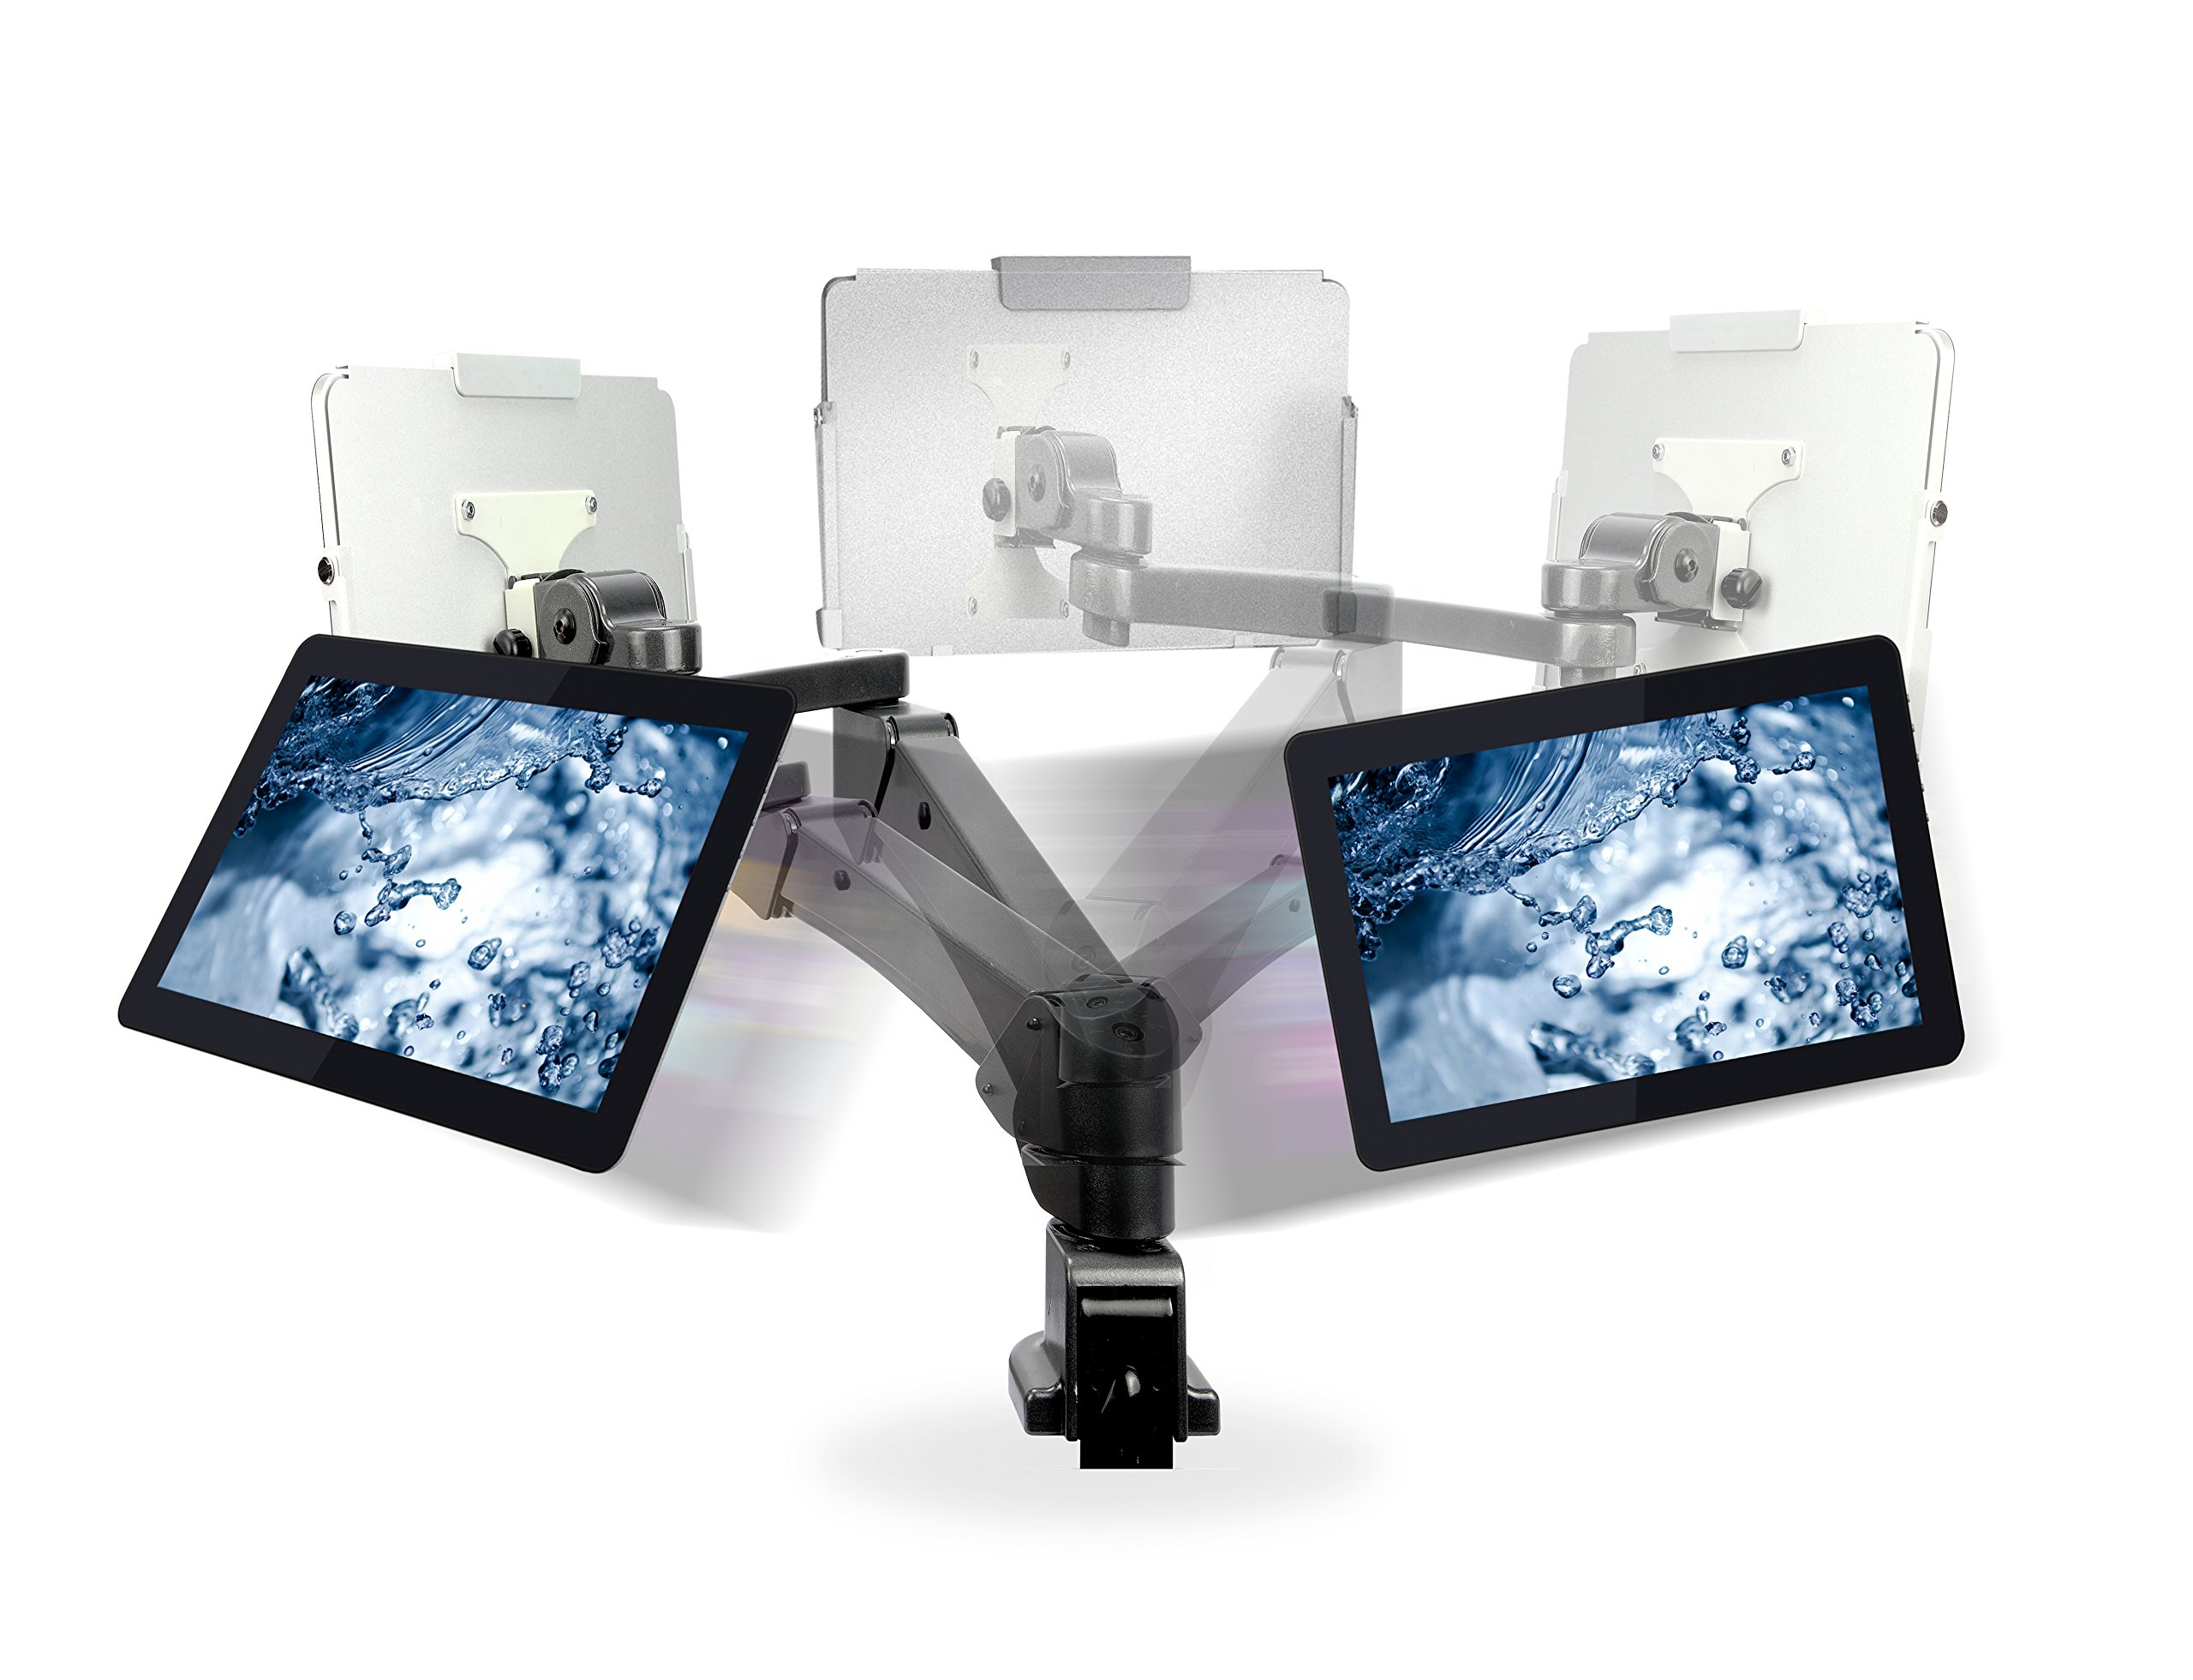 GeChic 1303i 13.3'' 1080p Touchscreen Portable Monitor with HDMI, VGA, MiniDisplay Inputs by Gechic